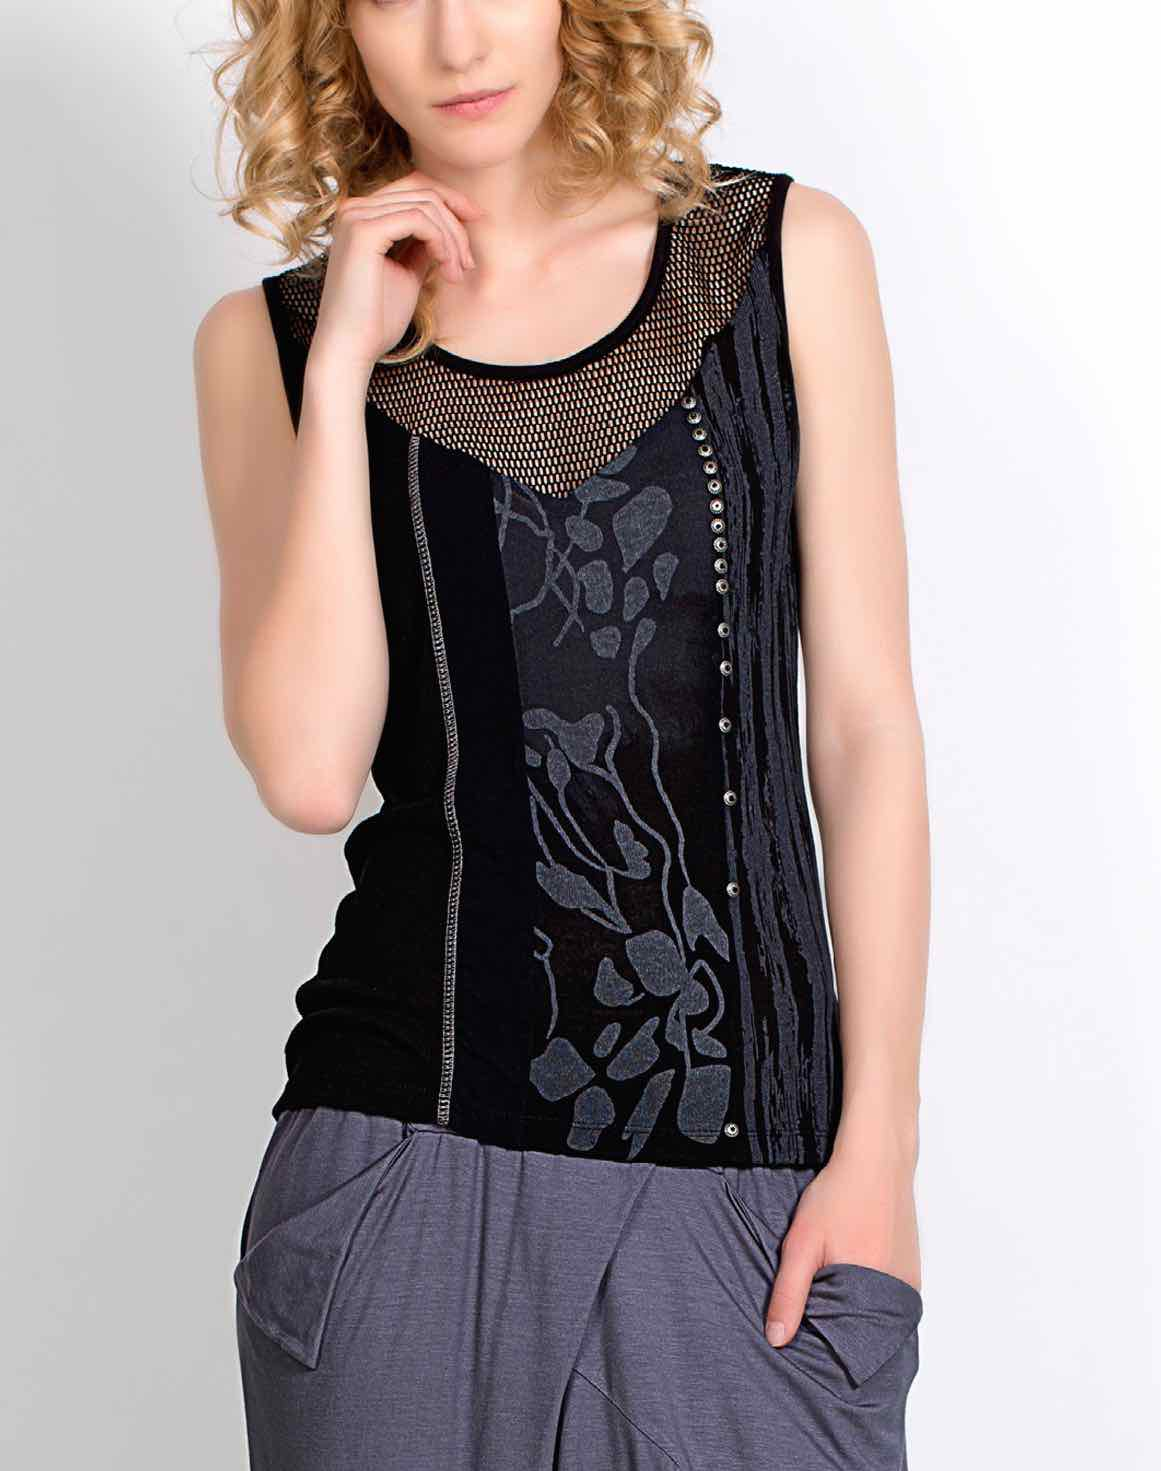 Angels Never Die Black Top 2075, buy online